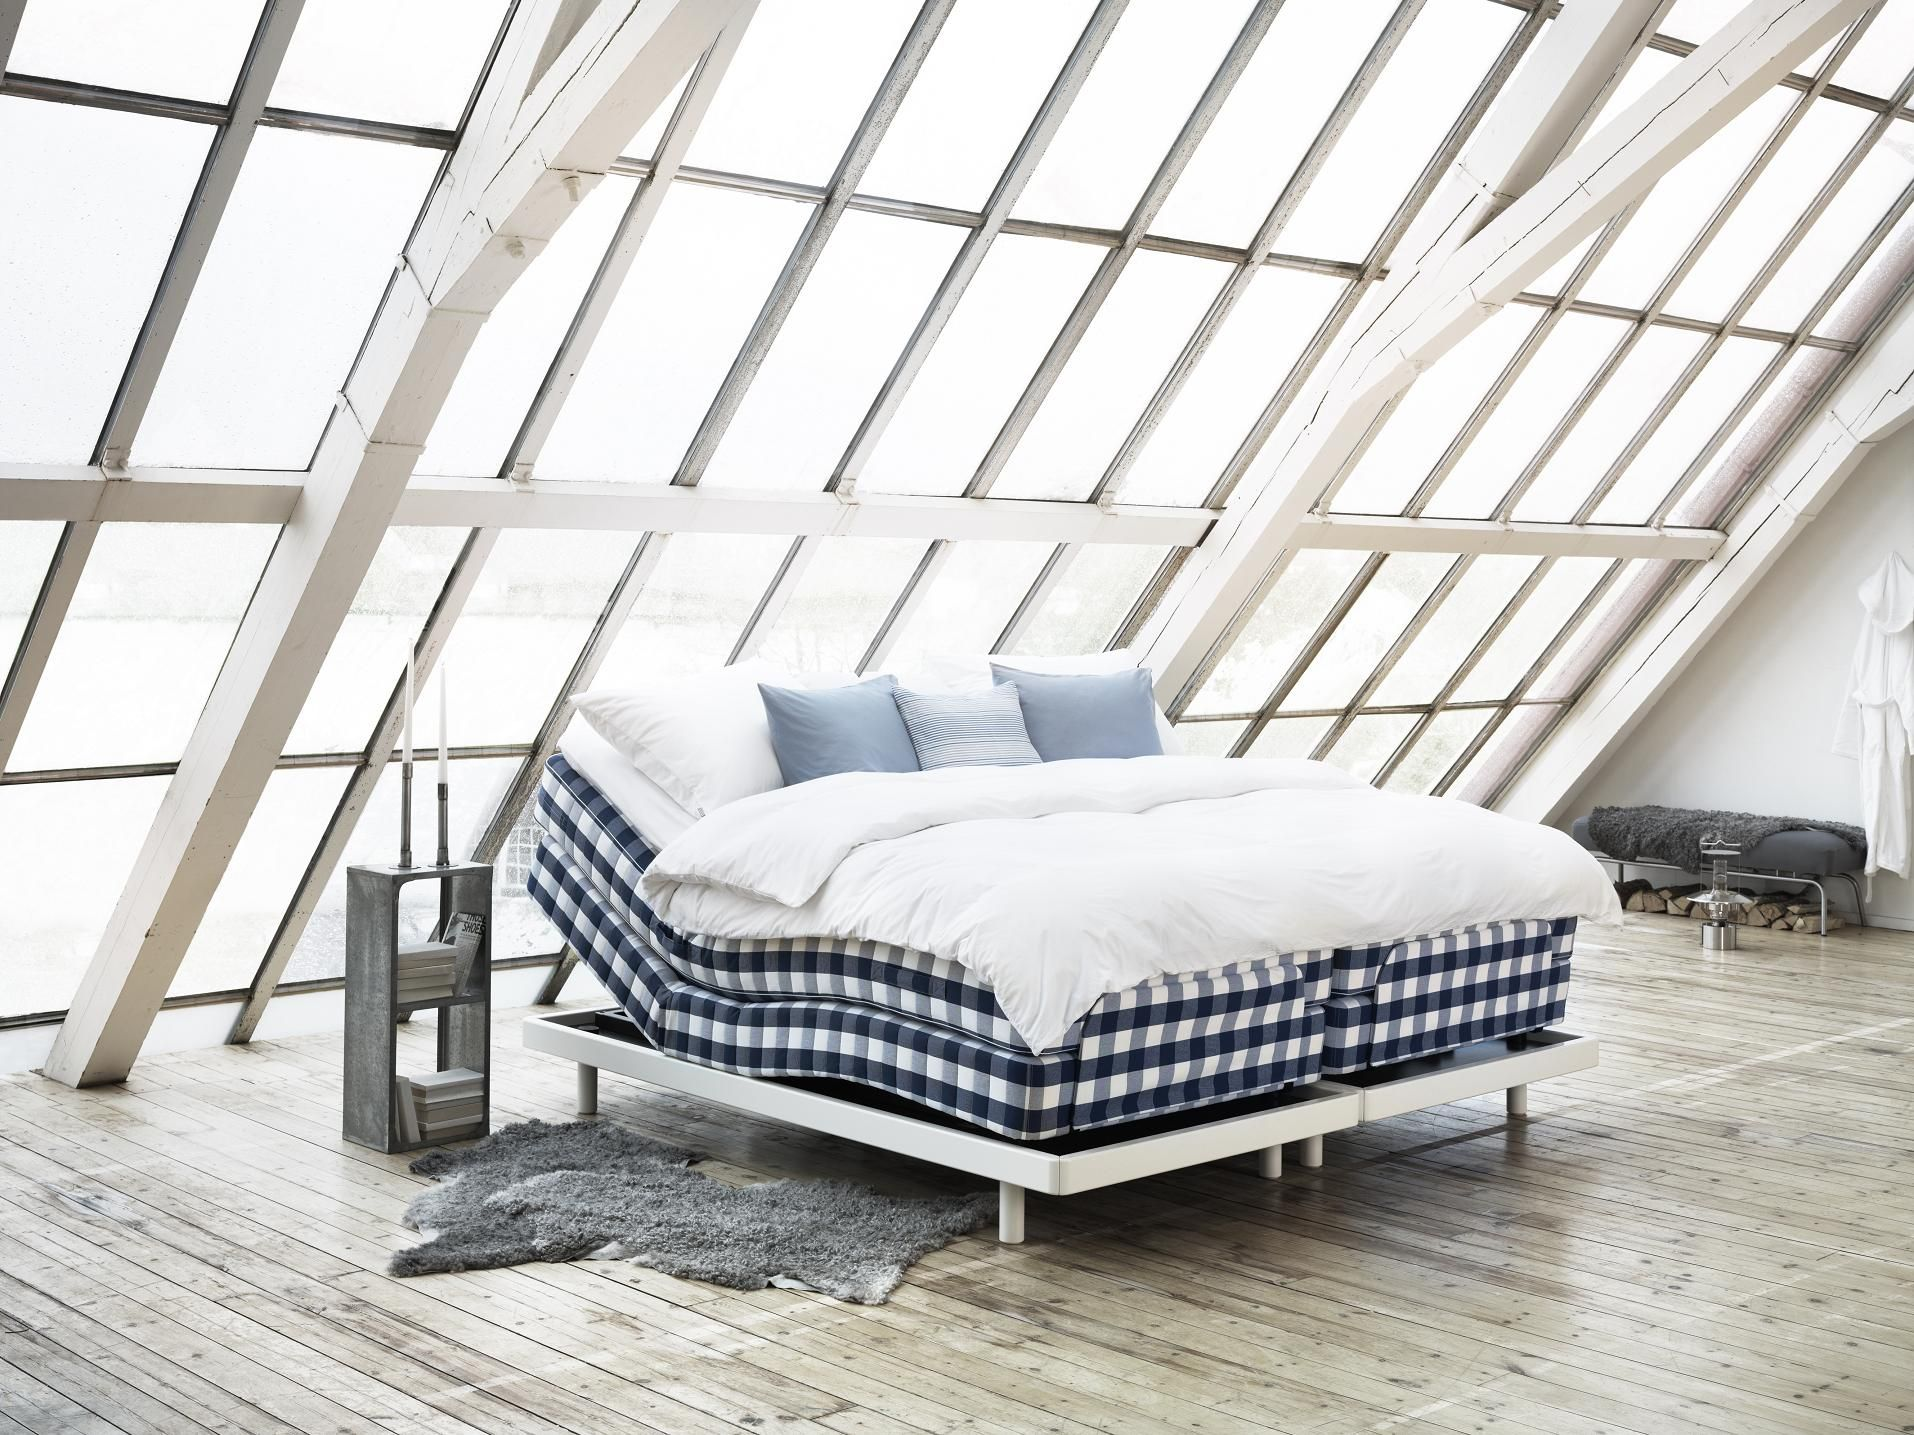 The Adjustable Bed Hastens Lenoria Is One Of Our Most Comfortable A Combination Of Precision Engineering And Adjustable Beds Furniture Luxury Bedroom Design